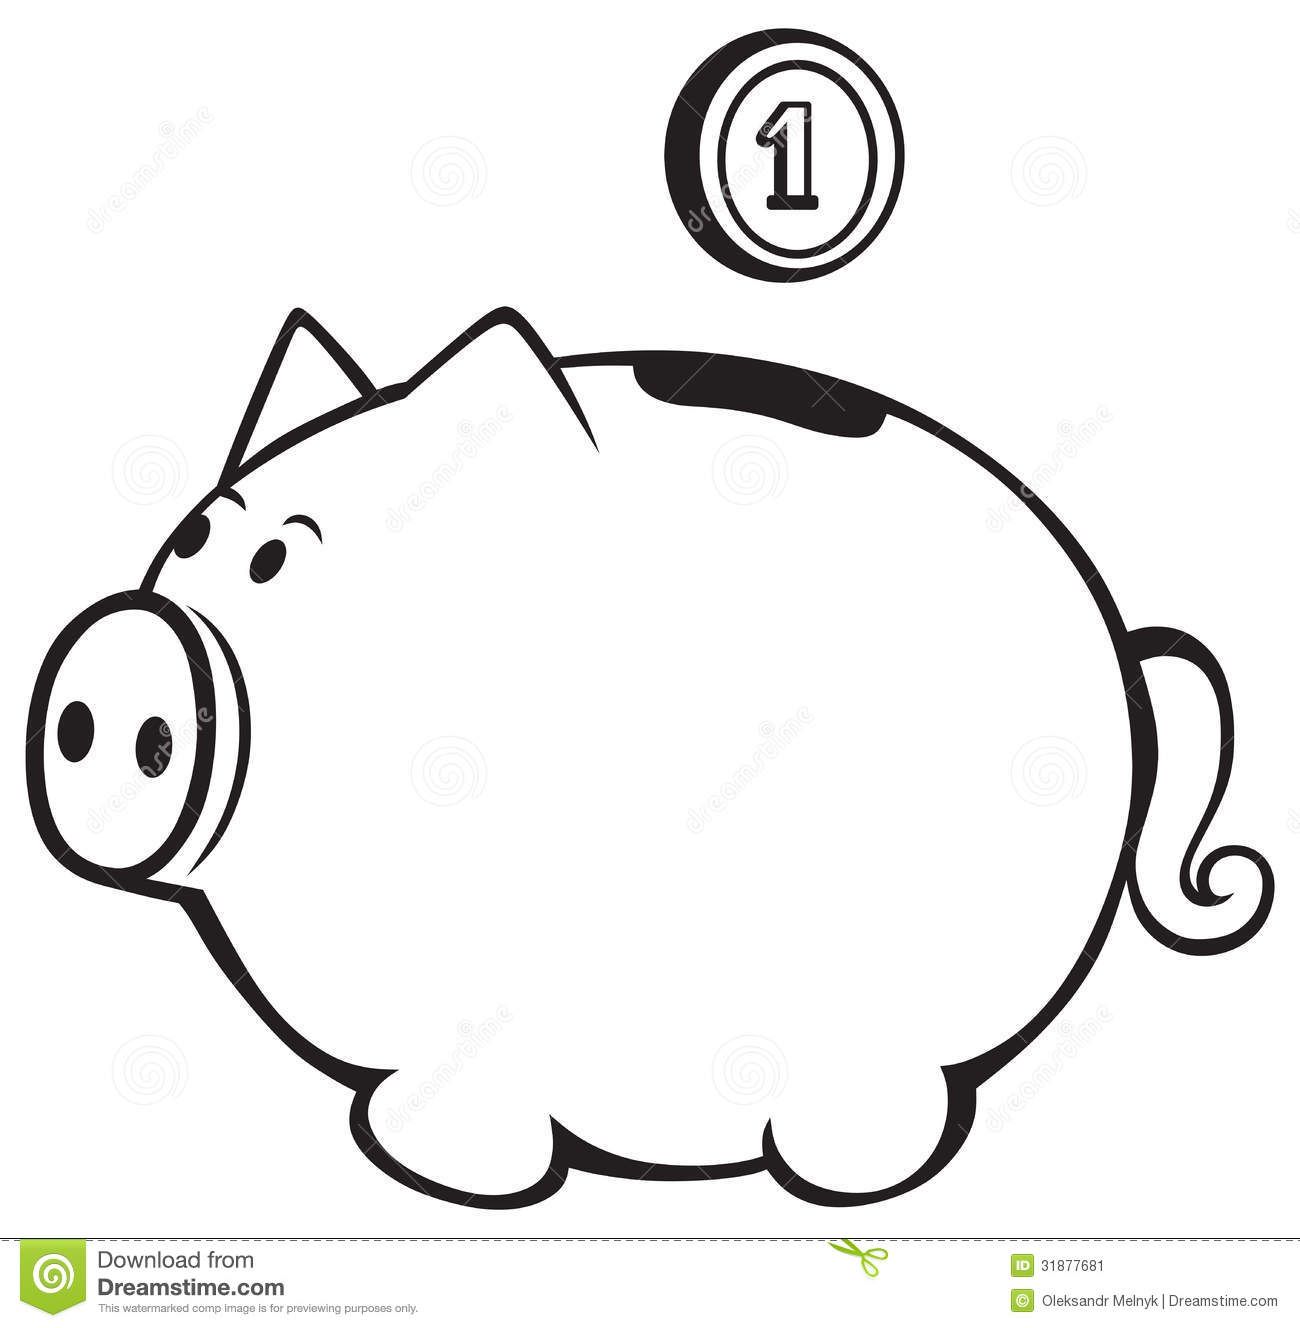 Black and white piggy bank clipart svg freeuse library Piggy Bank Clipart Black And White | Clipart Panda - Free Clipart ... svg freeuse library